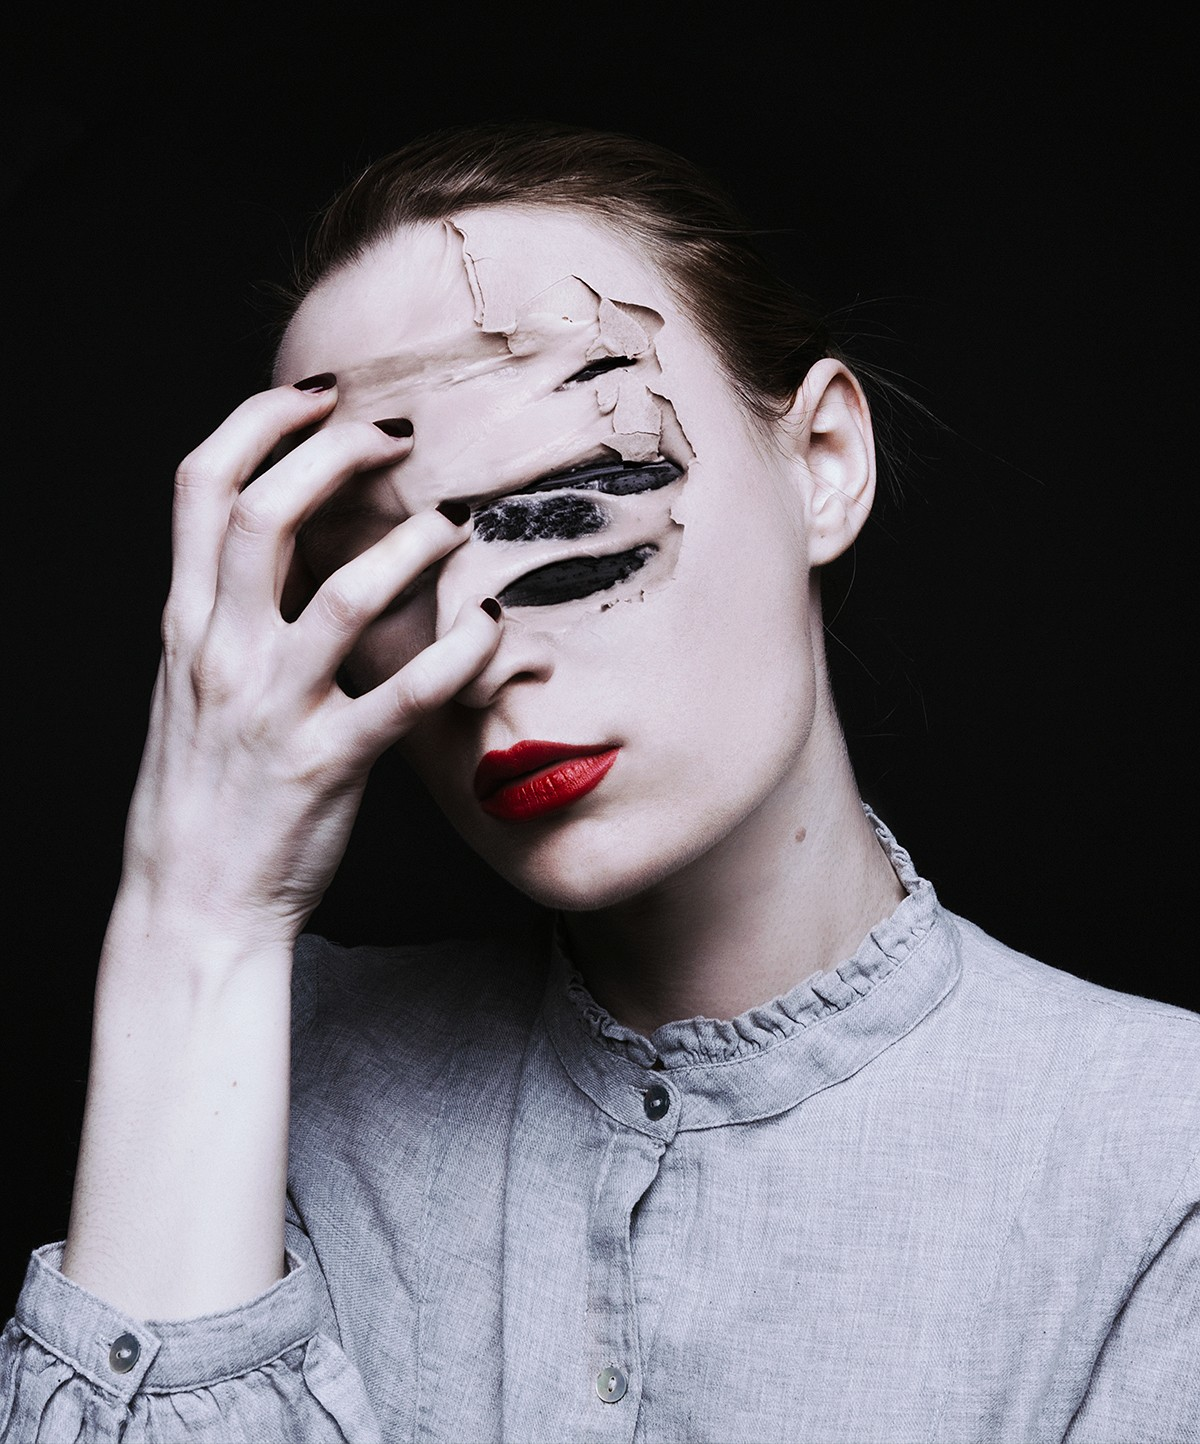 Art of Photography by Flora Borsi